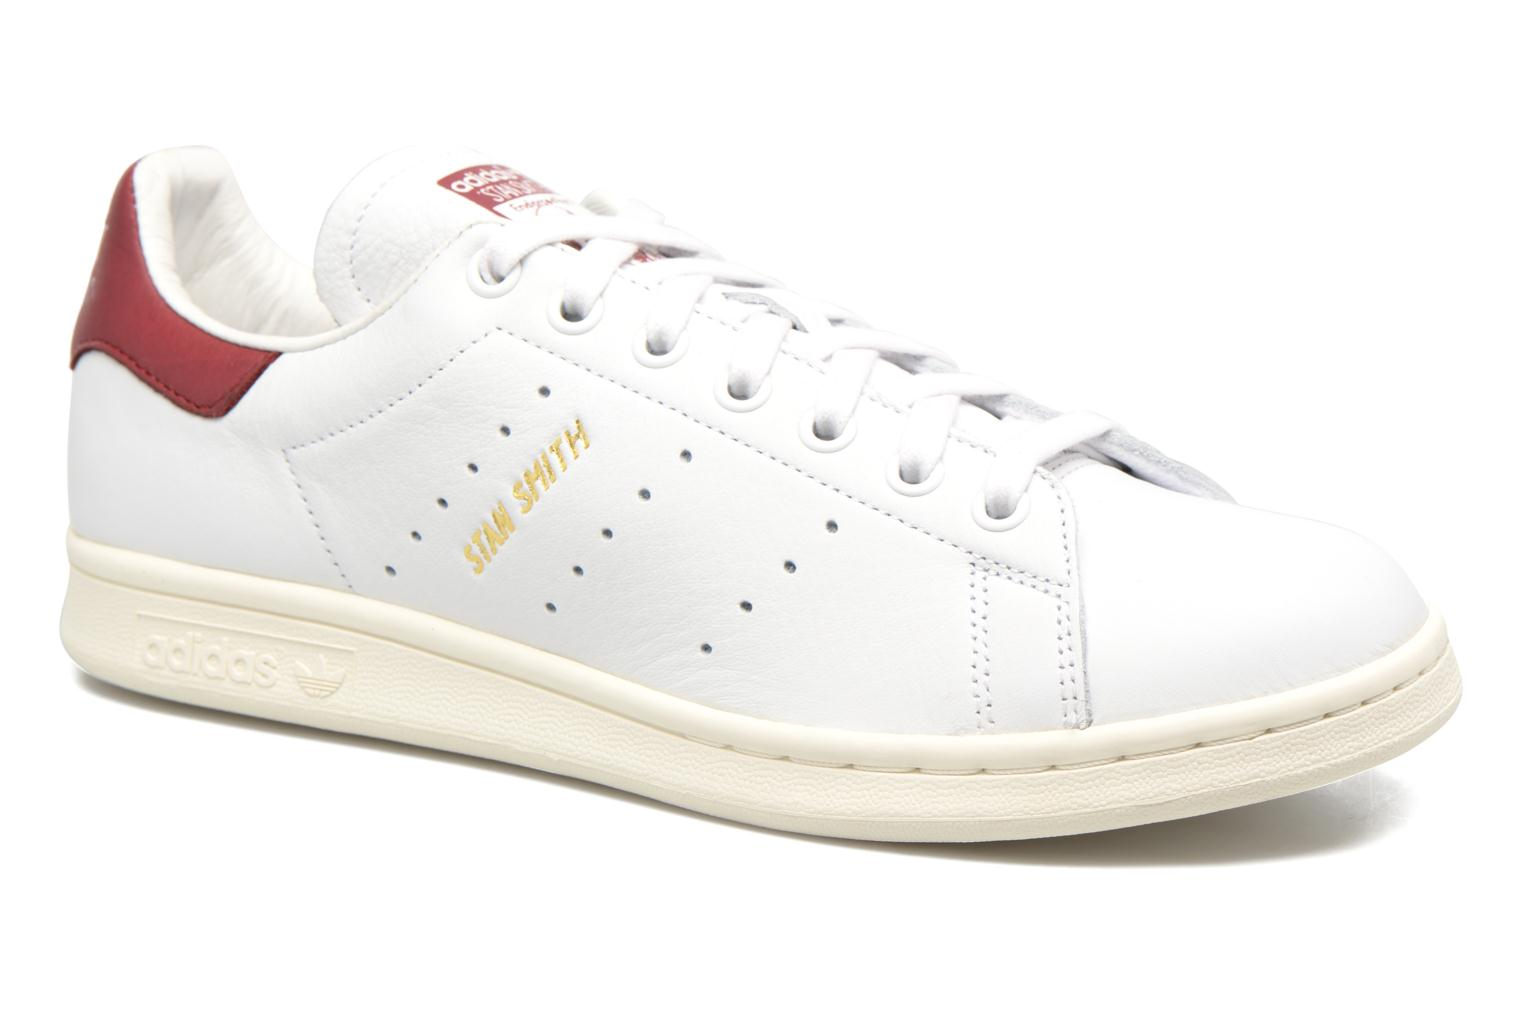 Stan Smith Ftwbla/Ftwbla/Borcol